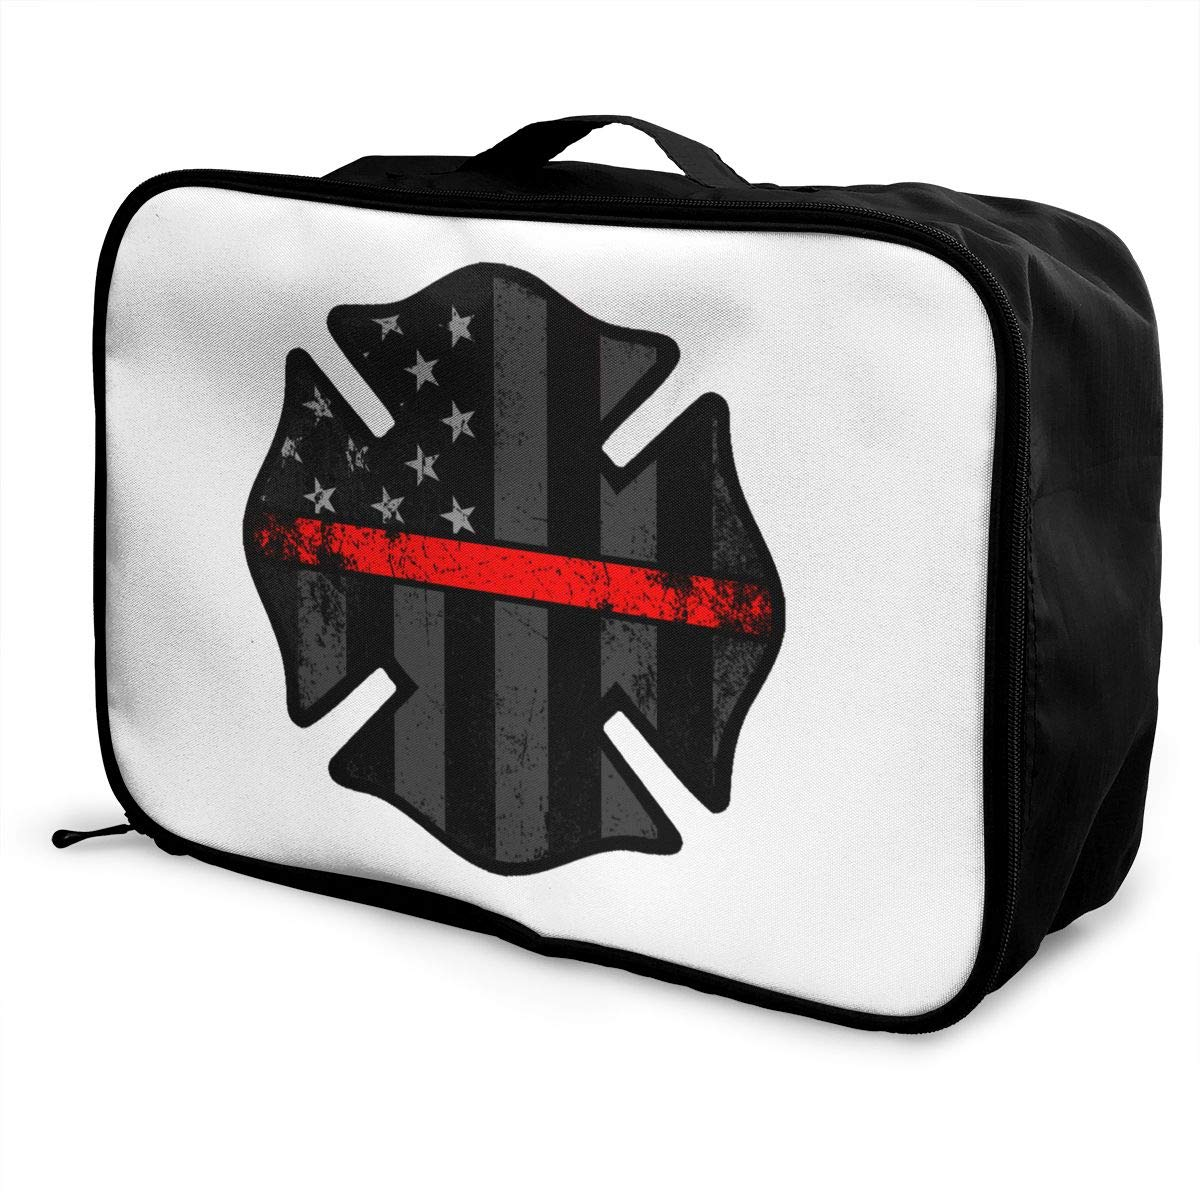 YueLJB Firefighter Thin Red Line Lightweight Large Capacity Portable Luggage Bag Travel Duffel Bag Storage Carry Luggage Duffle Tote Bag